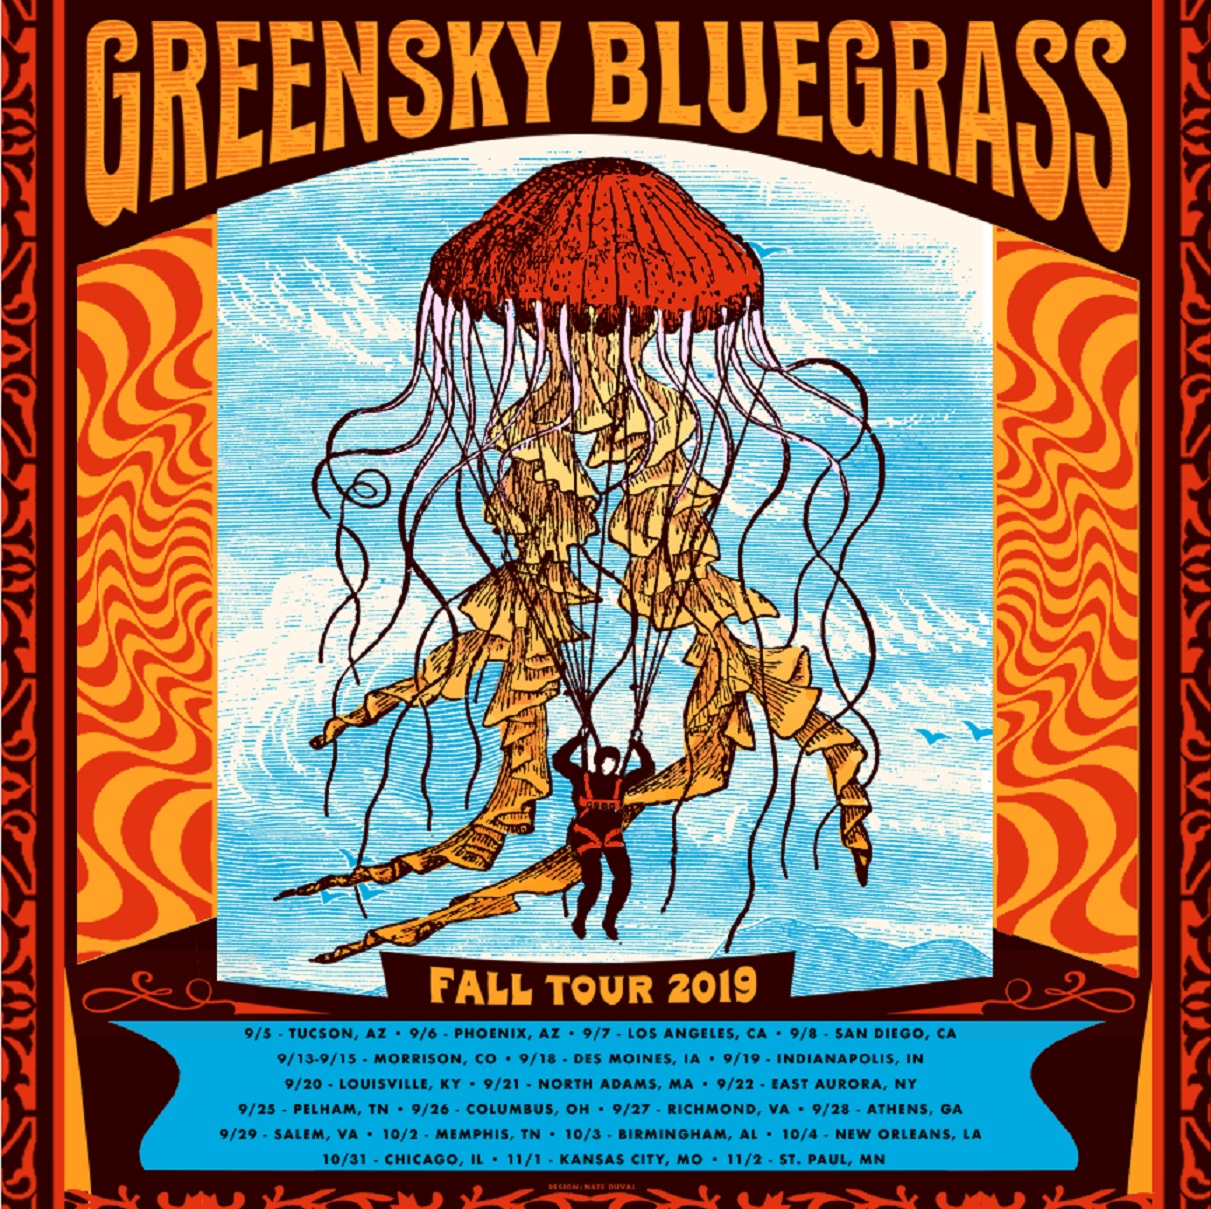 Greensky Bluegrass Announce 2019 Fall Tour Dates